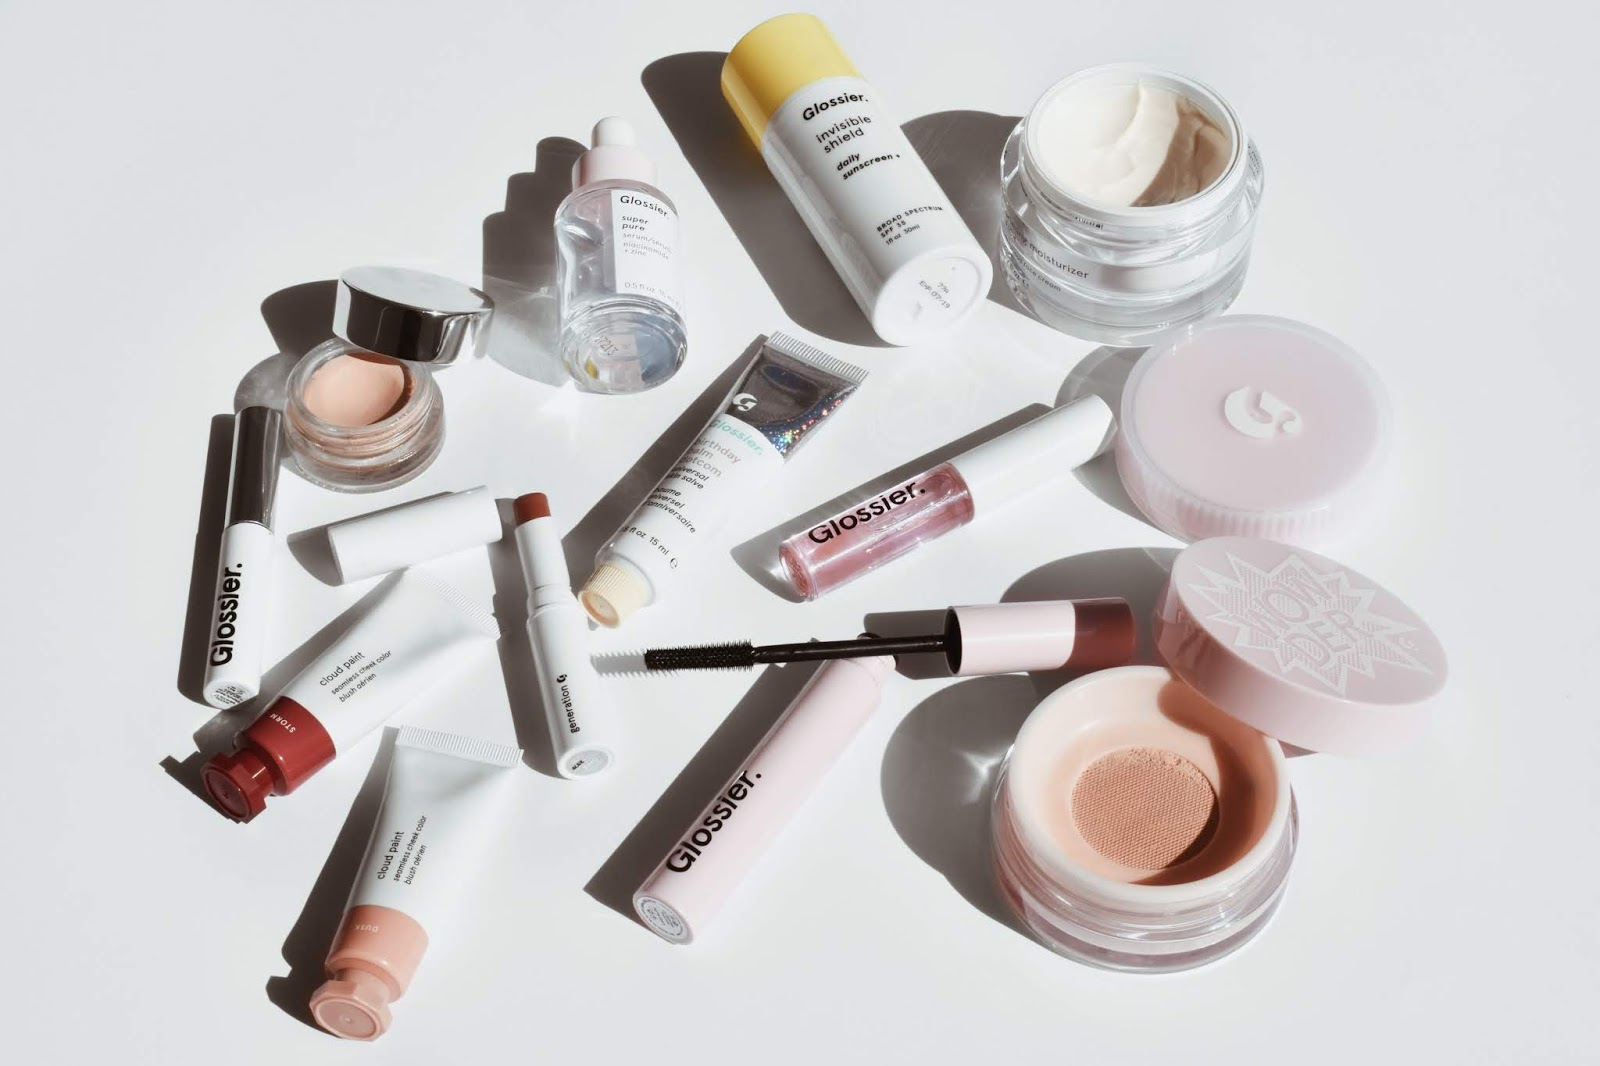 glossier showroom new york nyc noirette diary 10